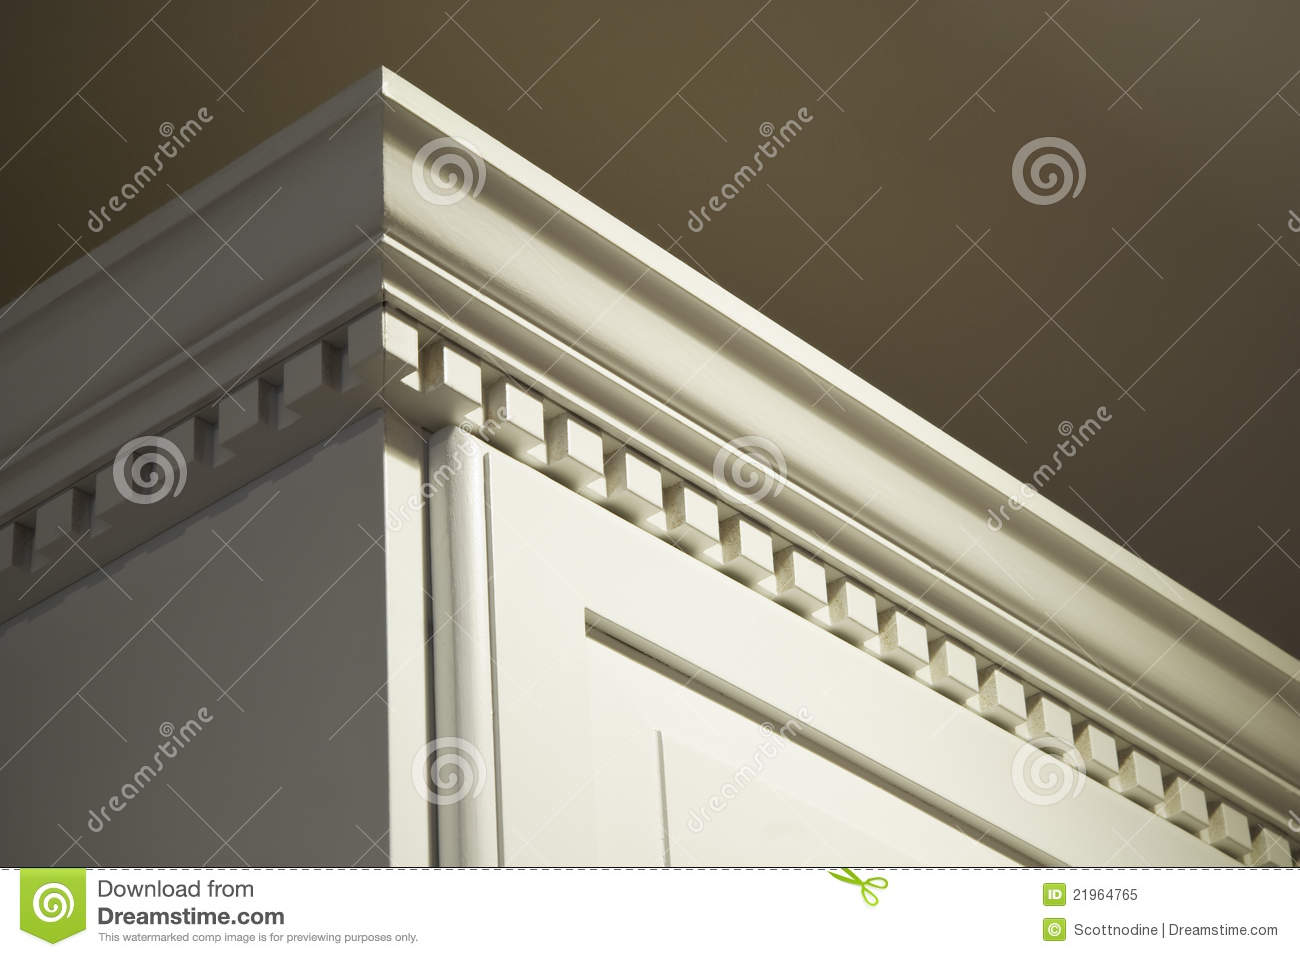 kitchen cabinet moulding mop crown stock image - image: 21964765